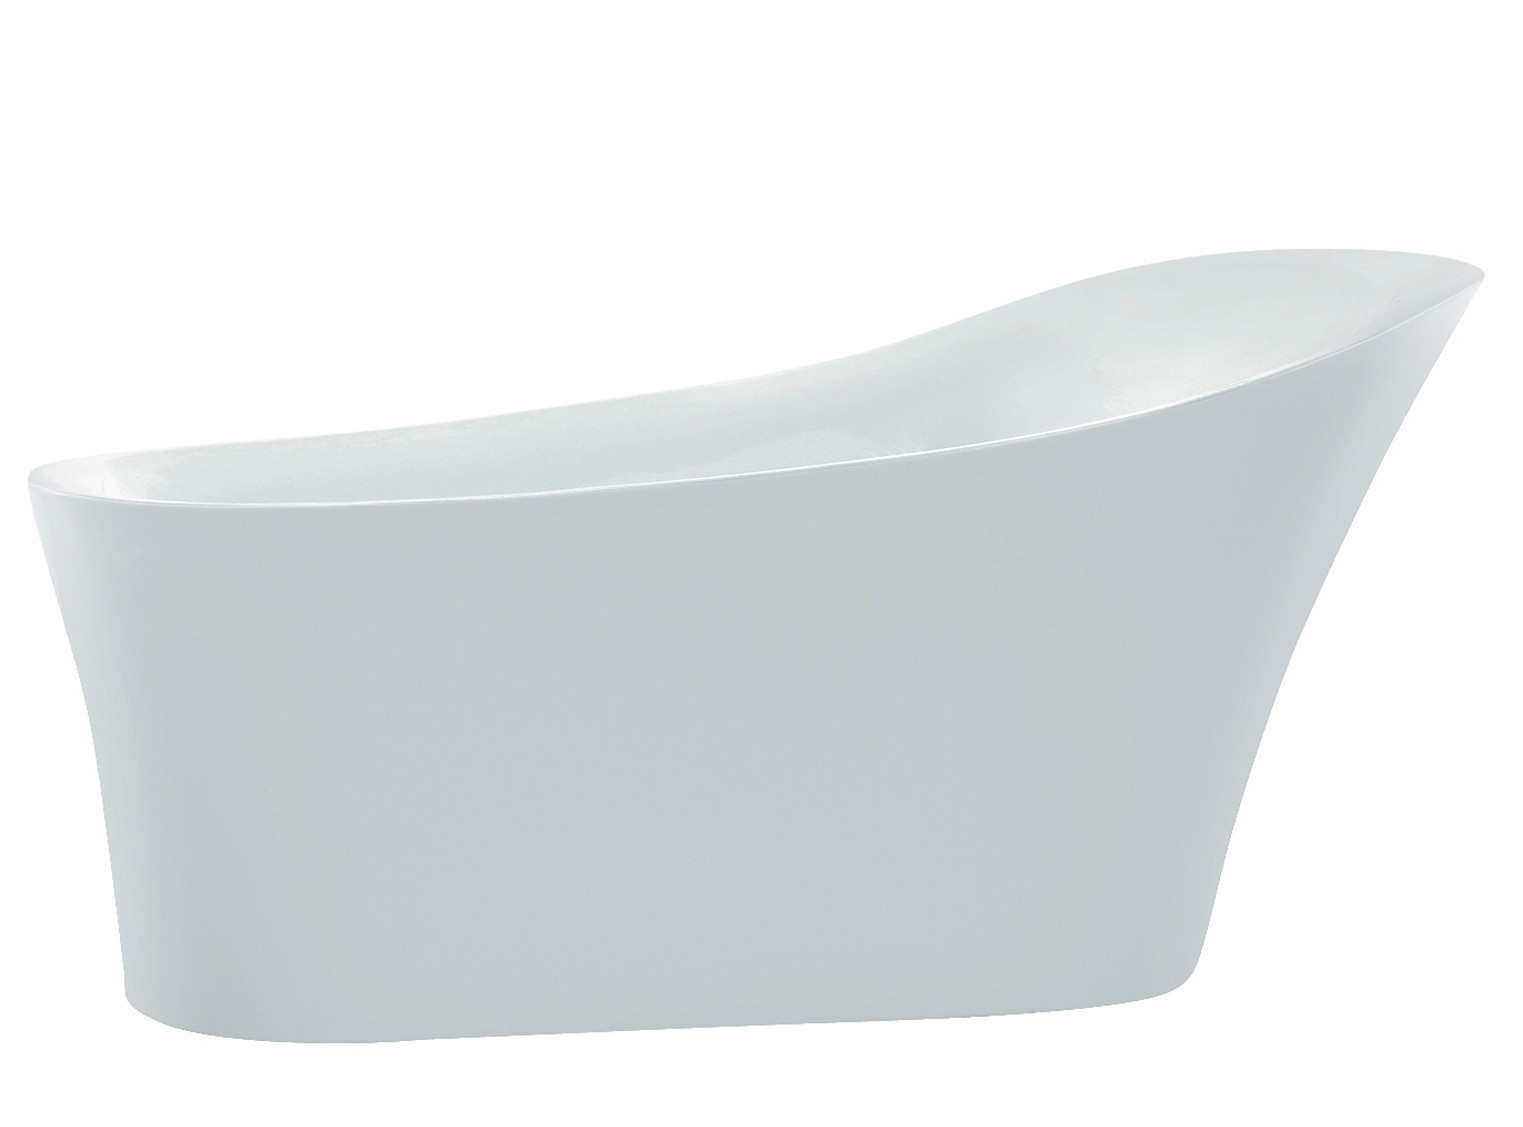 Anzzi FT-AZ092 Maple Series 5.58 ft. Freestanding Bathtub in White